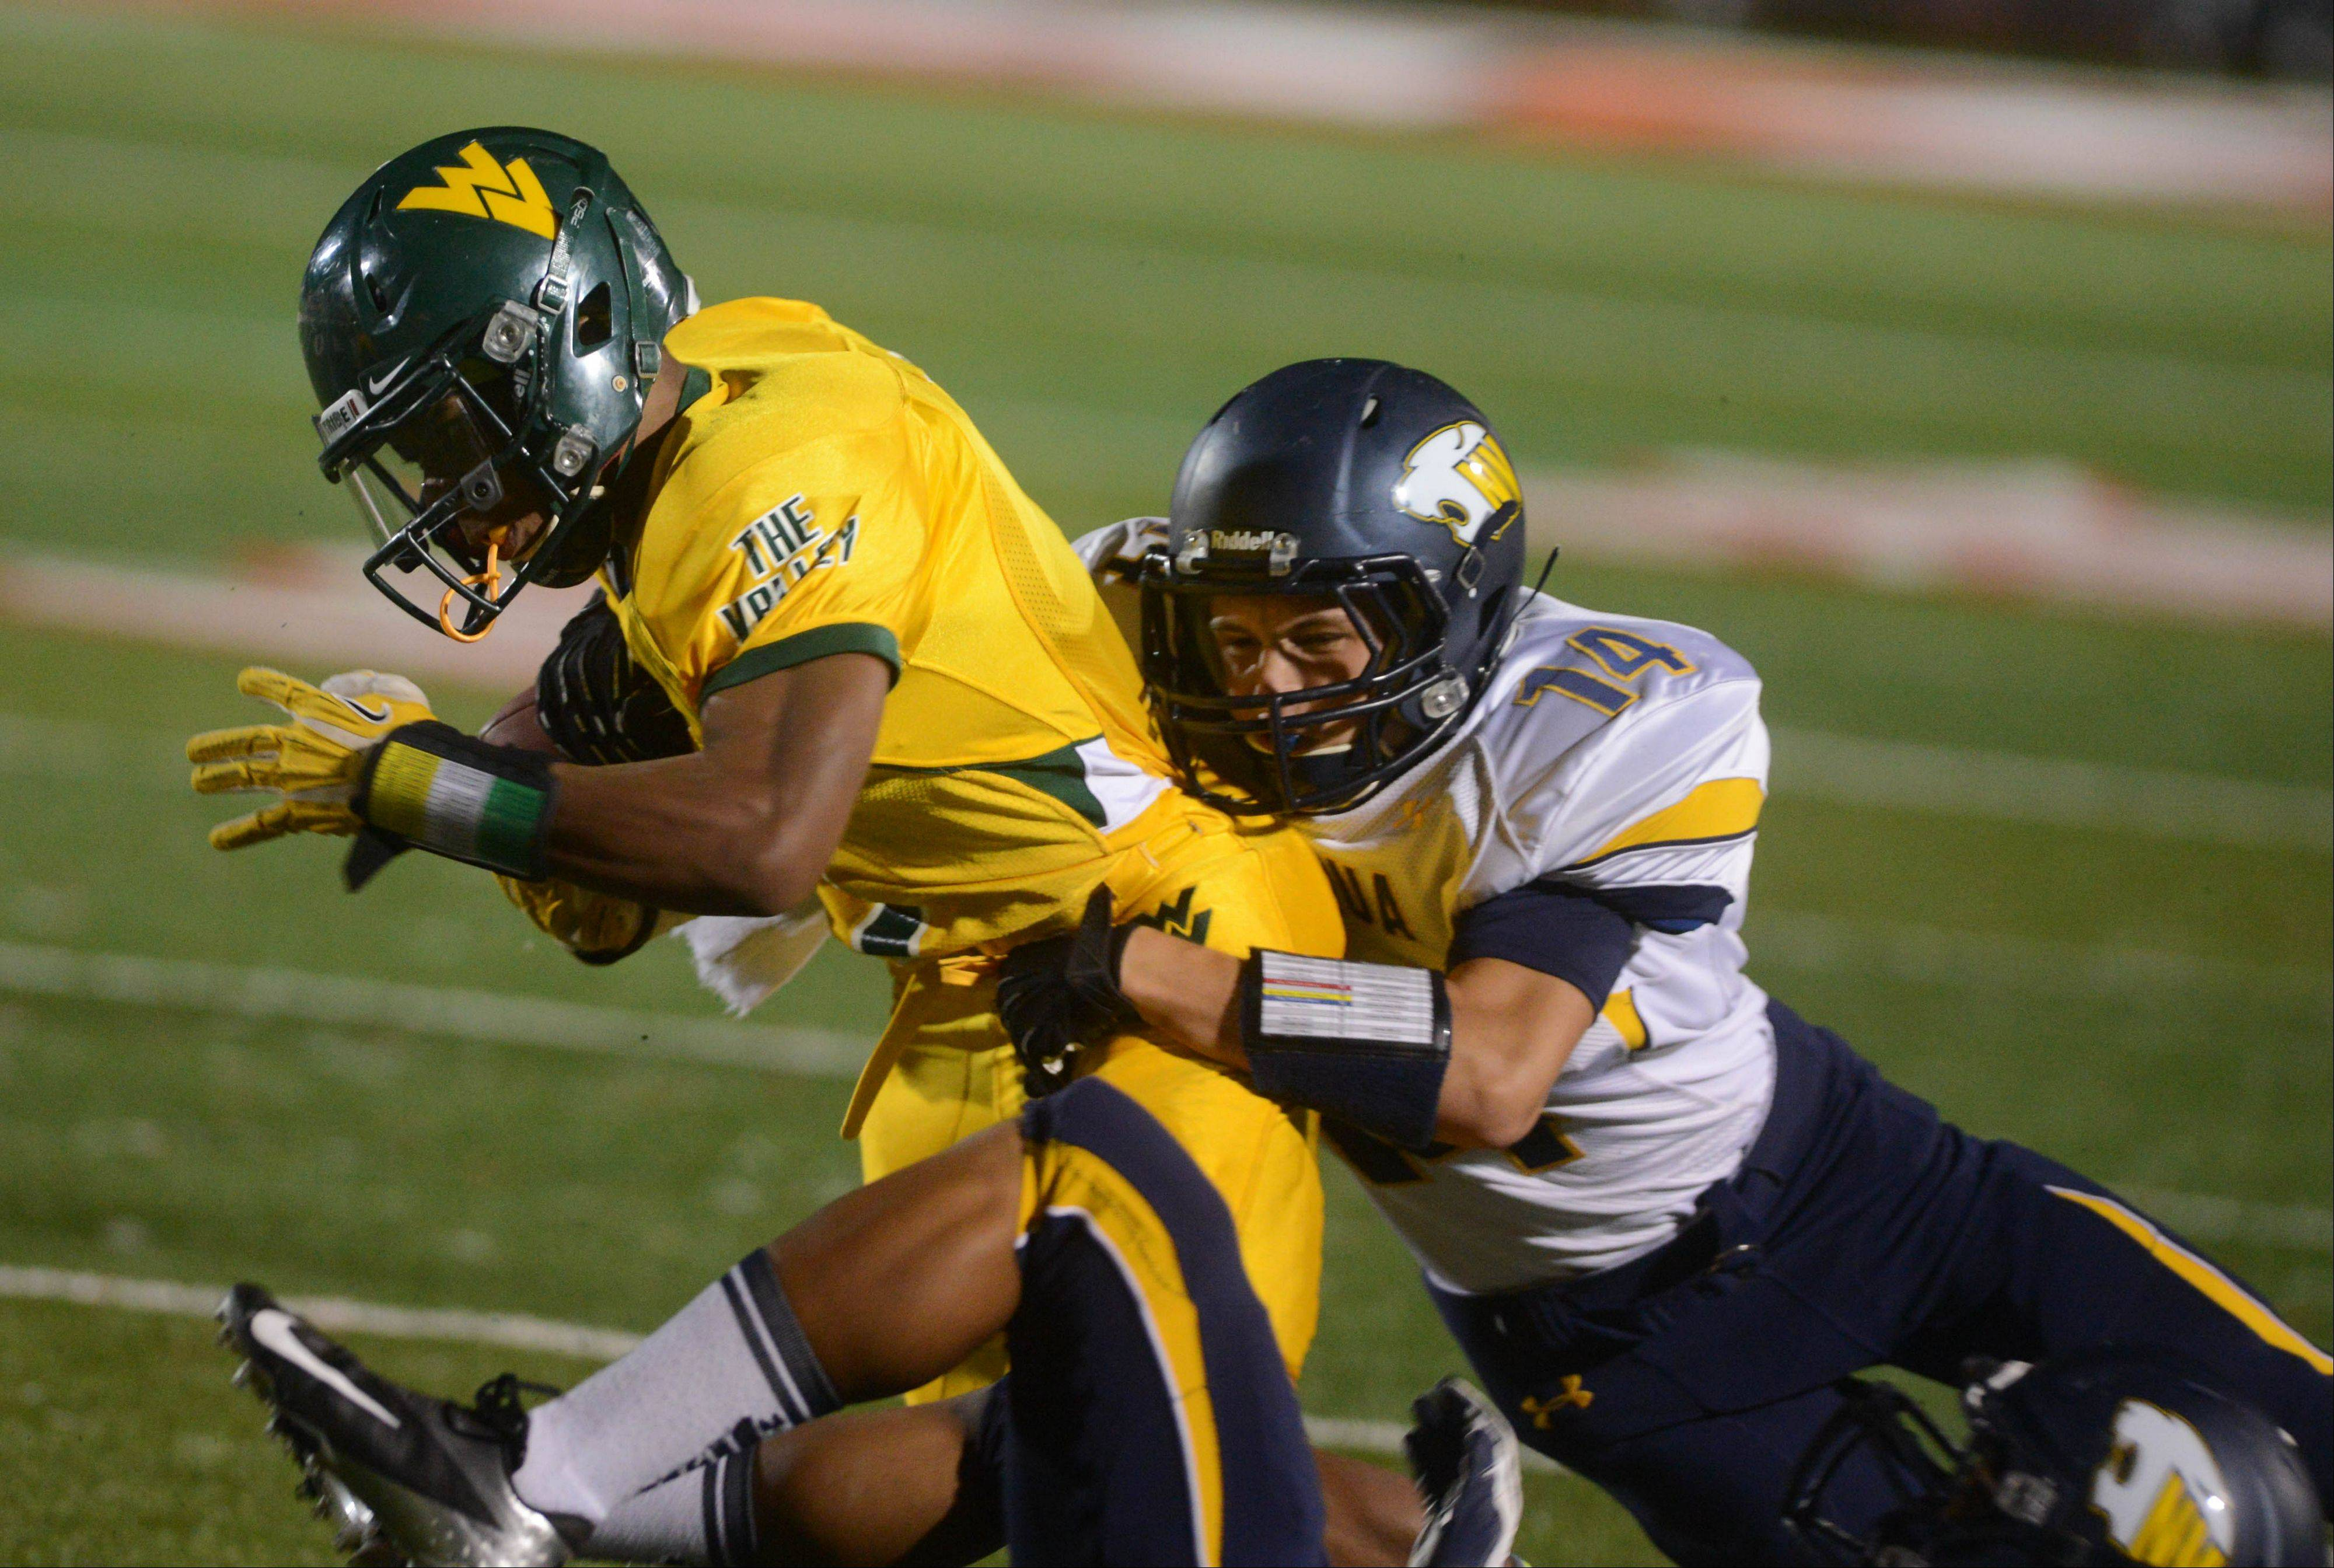 Tony Durns of Waubonsie Valley is nailed by Eli Tappin of Neuqua Valley during the Neuqua Valley vs. Waubonsie Valley football game at North Central College Friday.